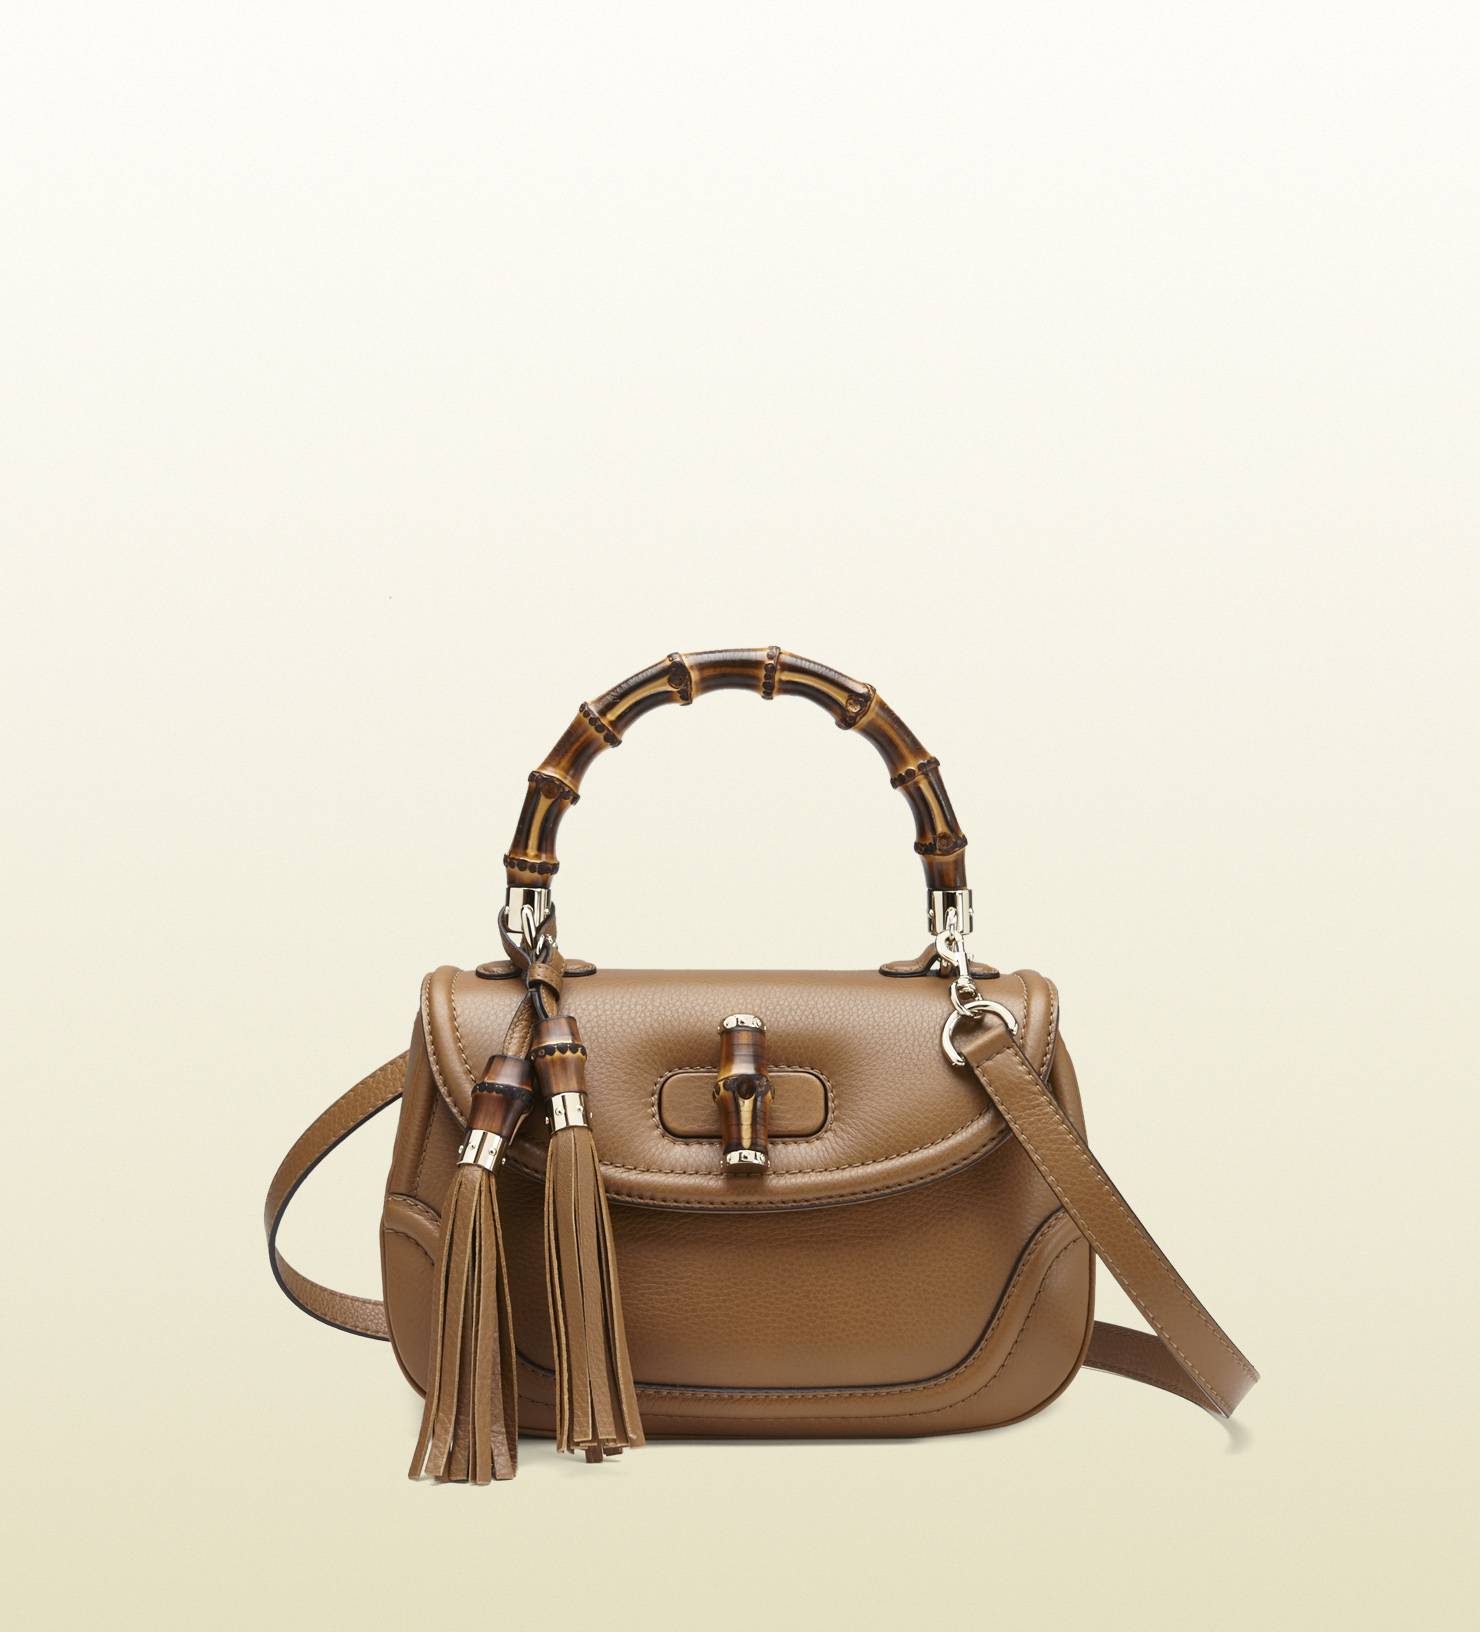 8ceb44b14eeb53 Gucci Bag With Bamboo Handles | Stanford Center for Opportunity ...